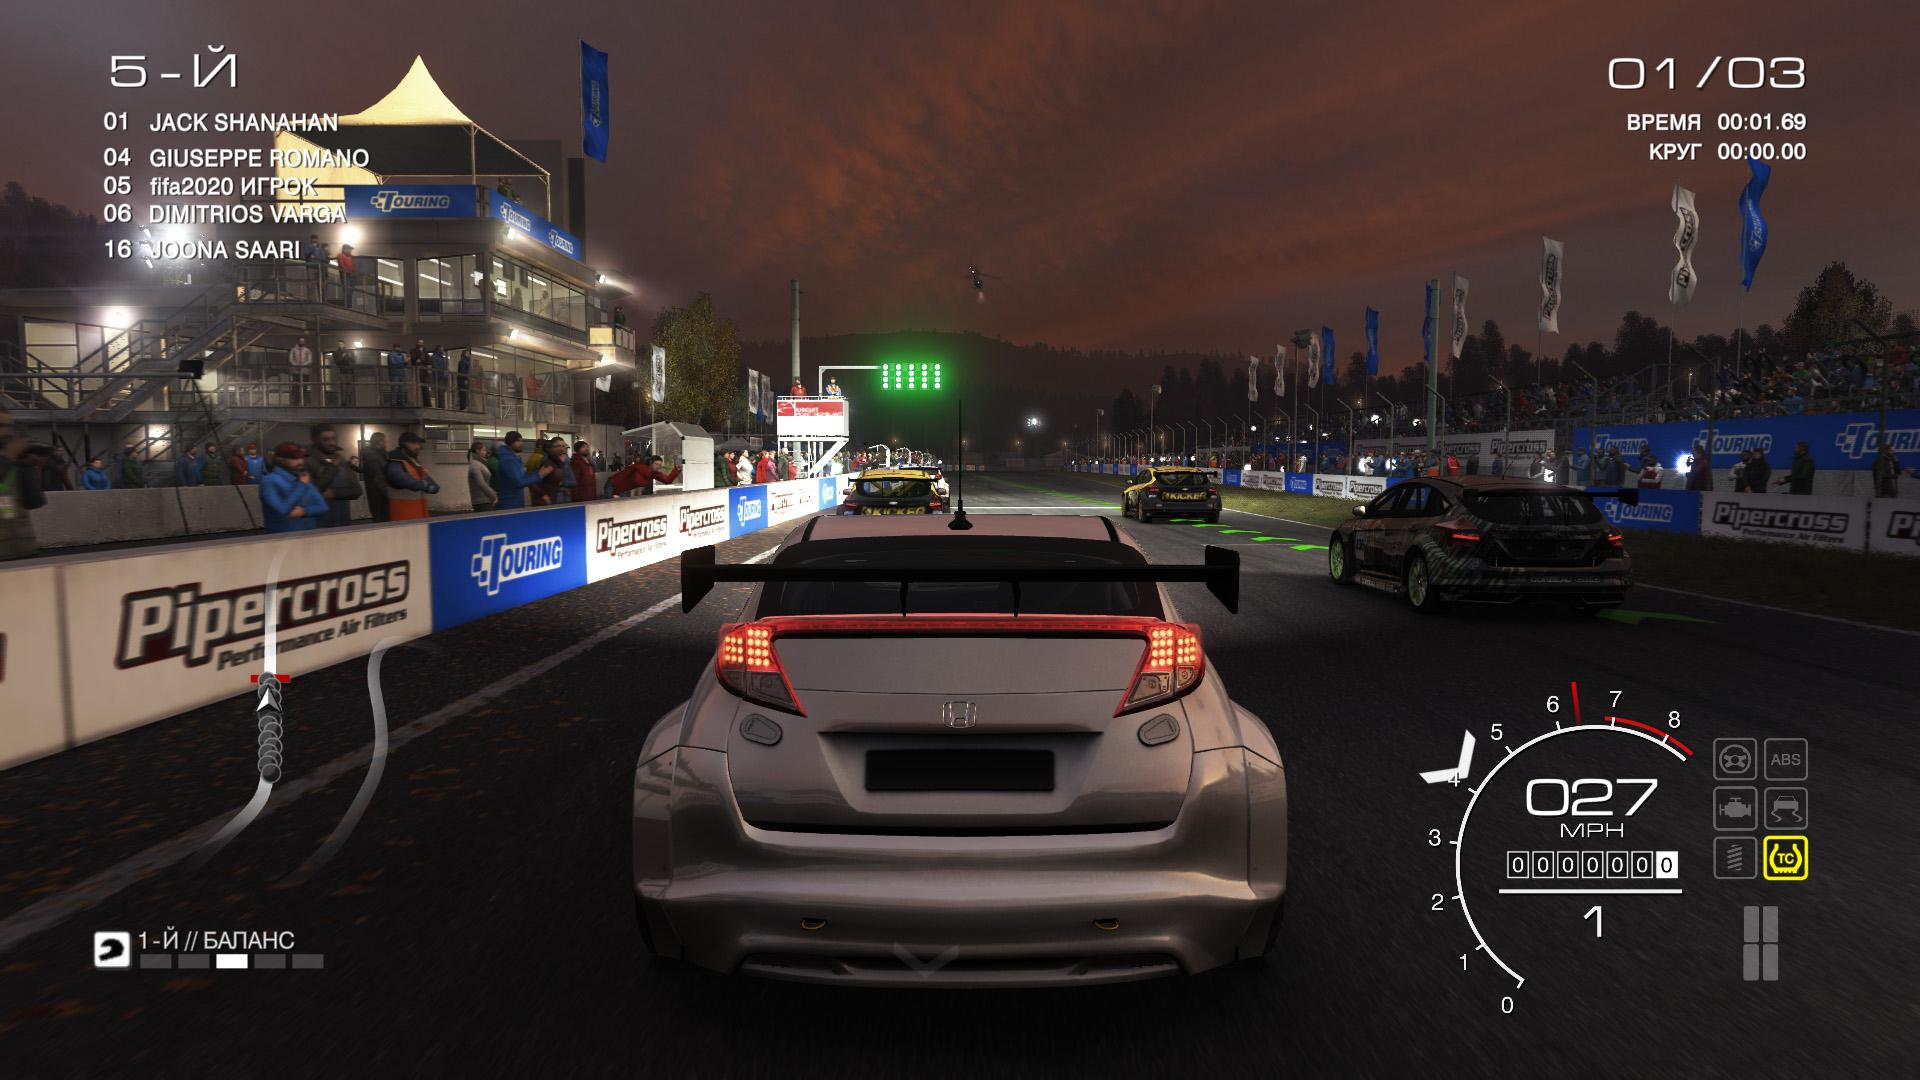 Download GRID Autosport - Black Edition torrent free by R G